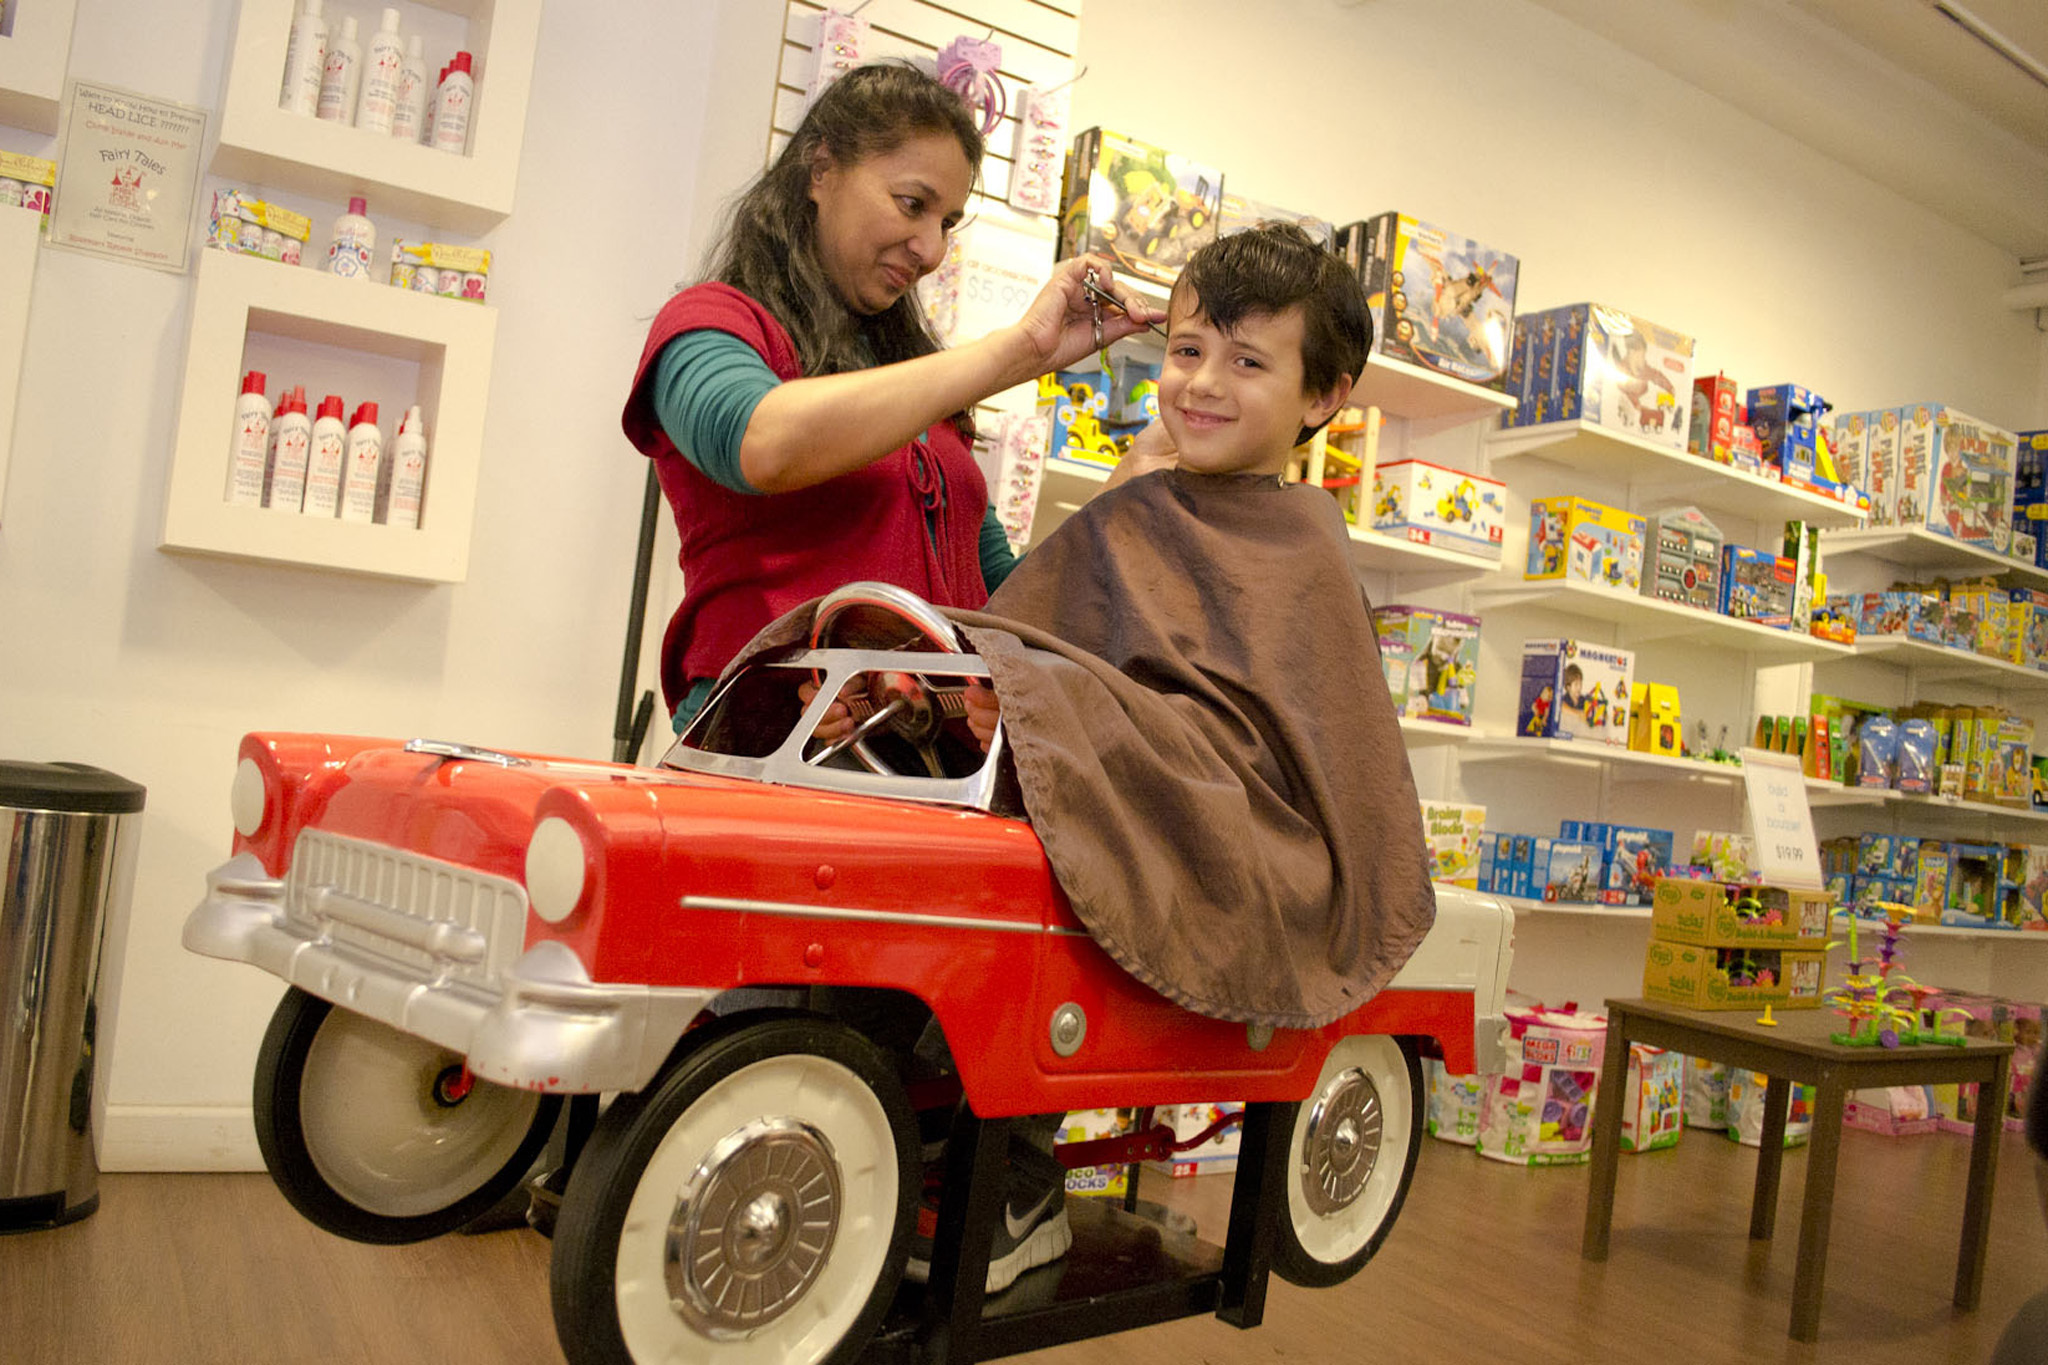 kids haircuts nyc shopping amp stores for in new york time out new york 9822 | image